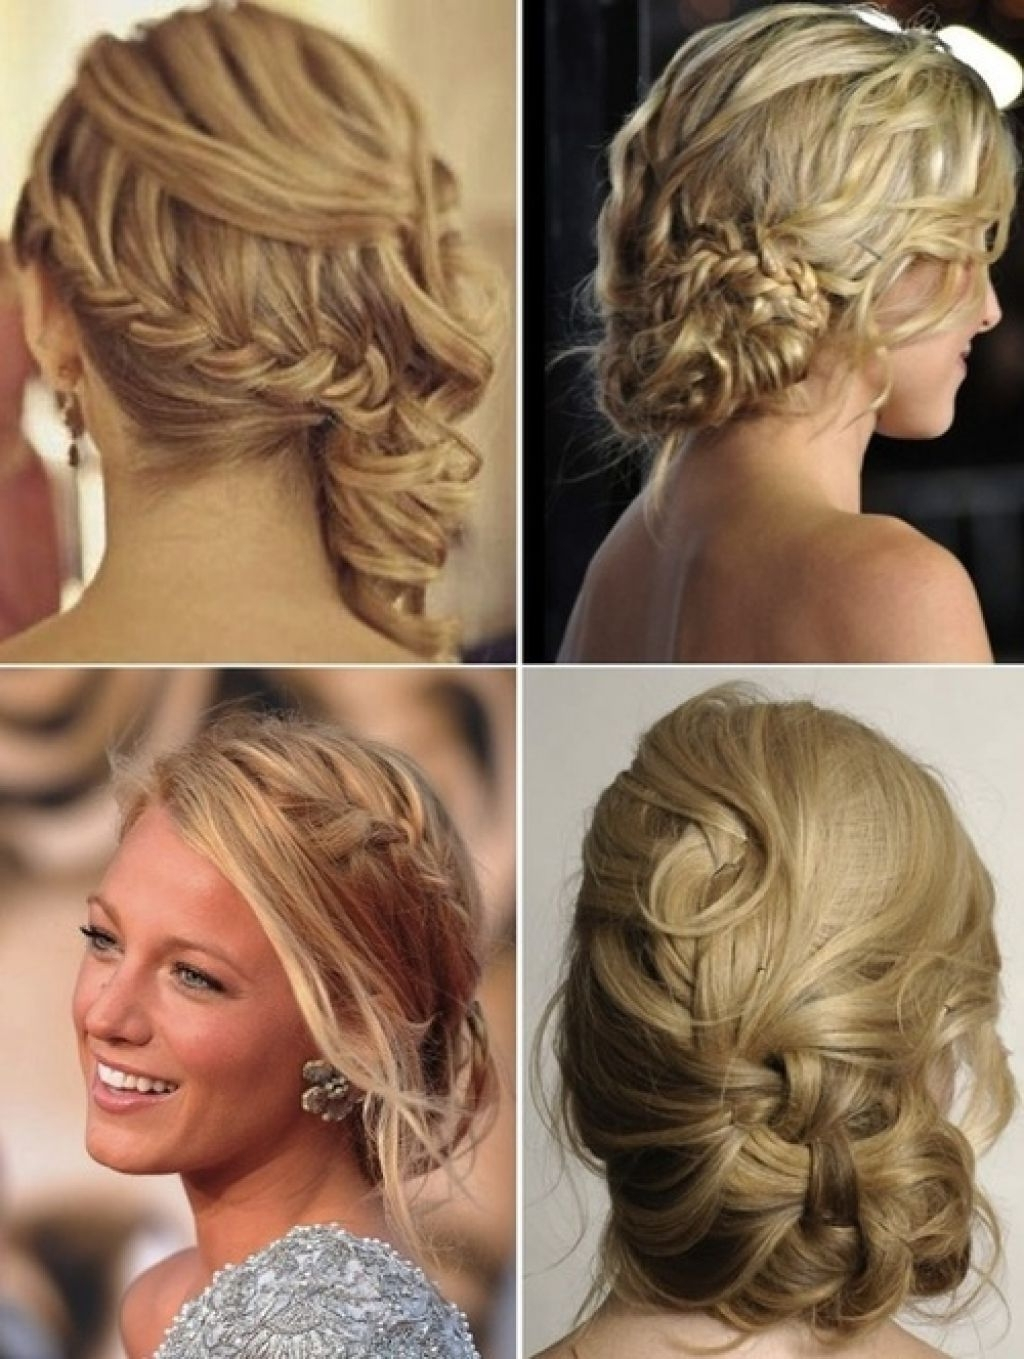 2018 Wedding Hairstyles For Medium Length Dark Hair Throughout Casual Wedding Hairstyles For Long Hair – Hairstyle For Women & Man (View 2 of 15)